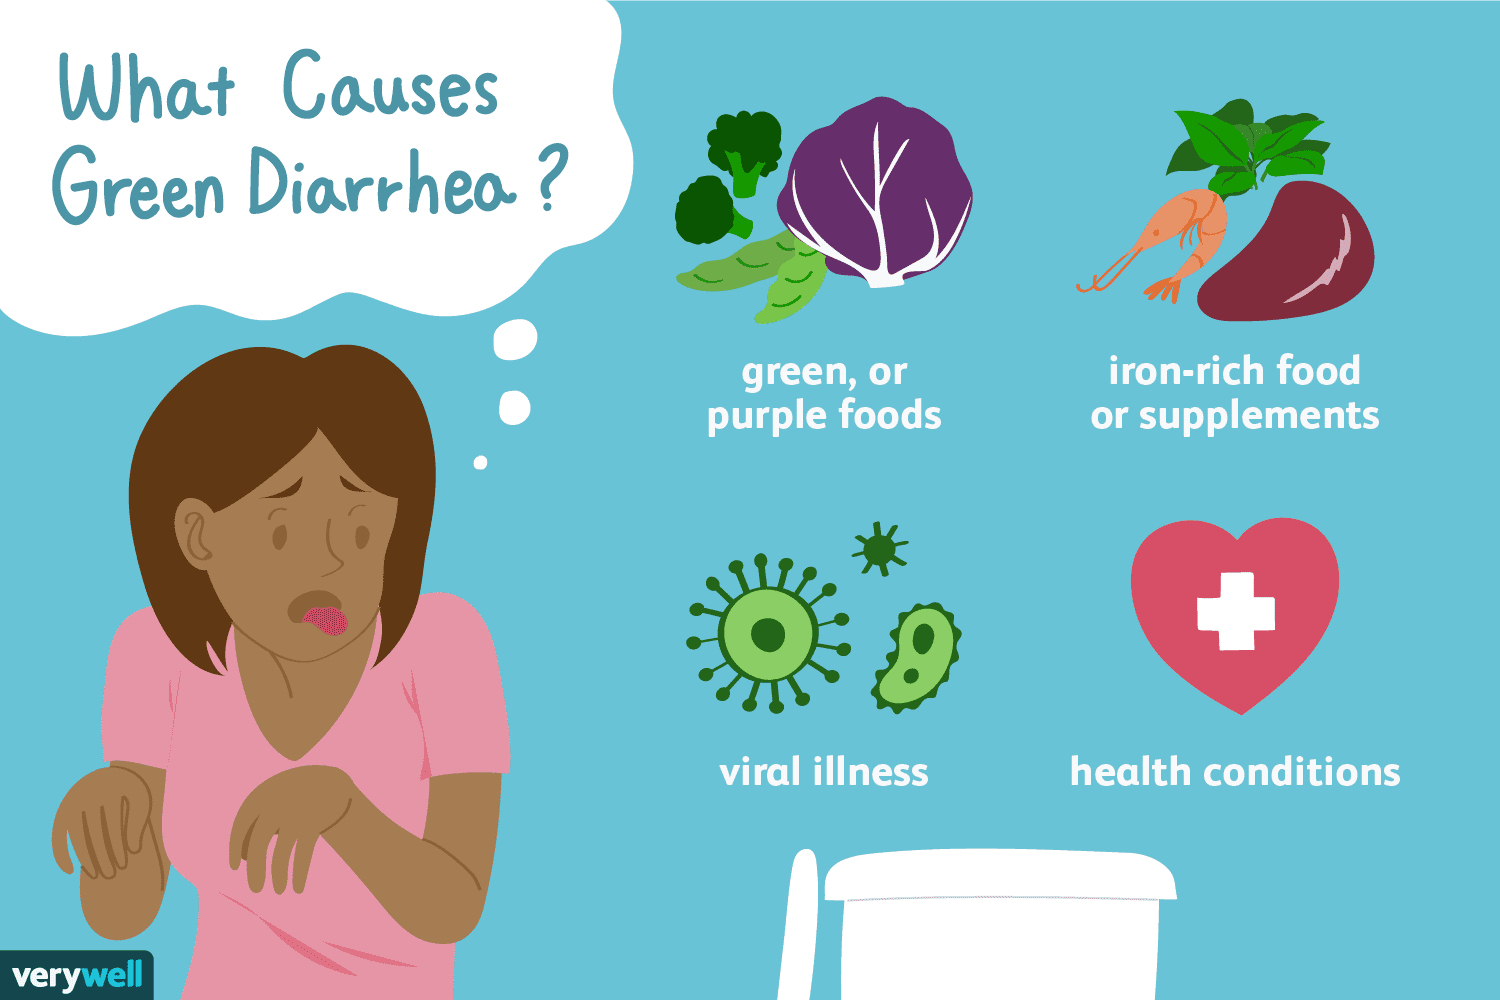 What Causes Green Diarrhea